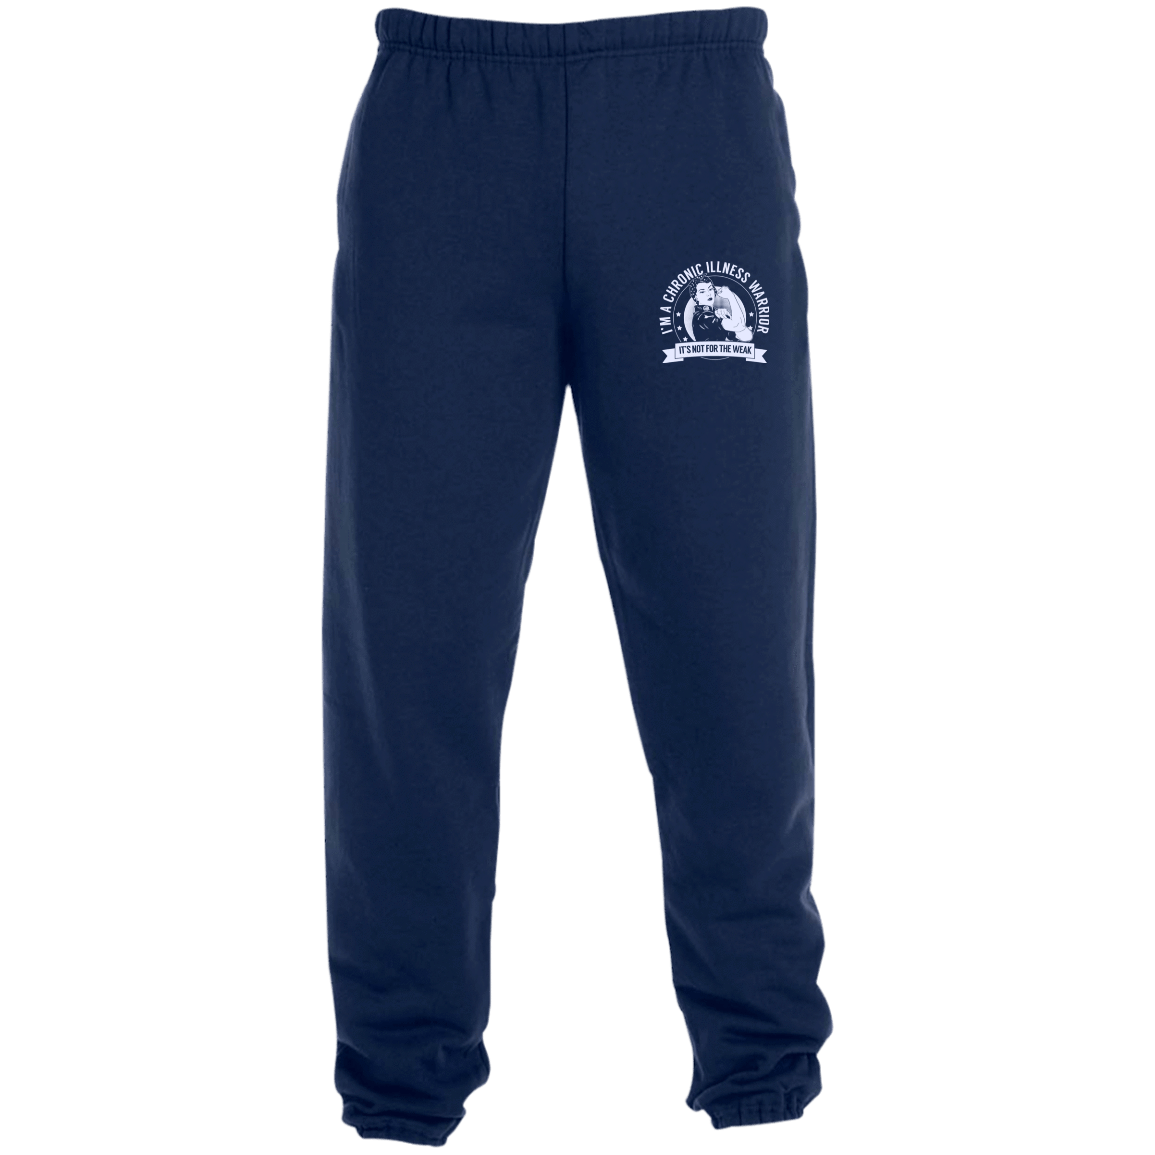 Sweatpants 3png - Chronic Illness Warrior NFTW Sweatpants with Pockets - The ...